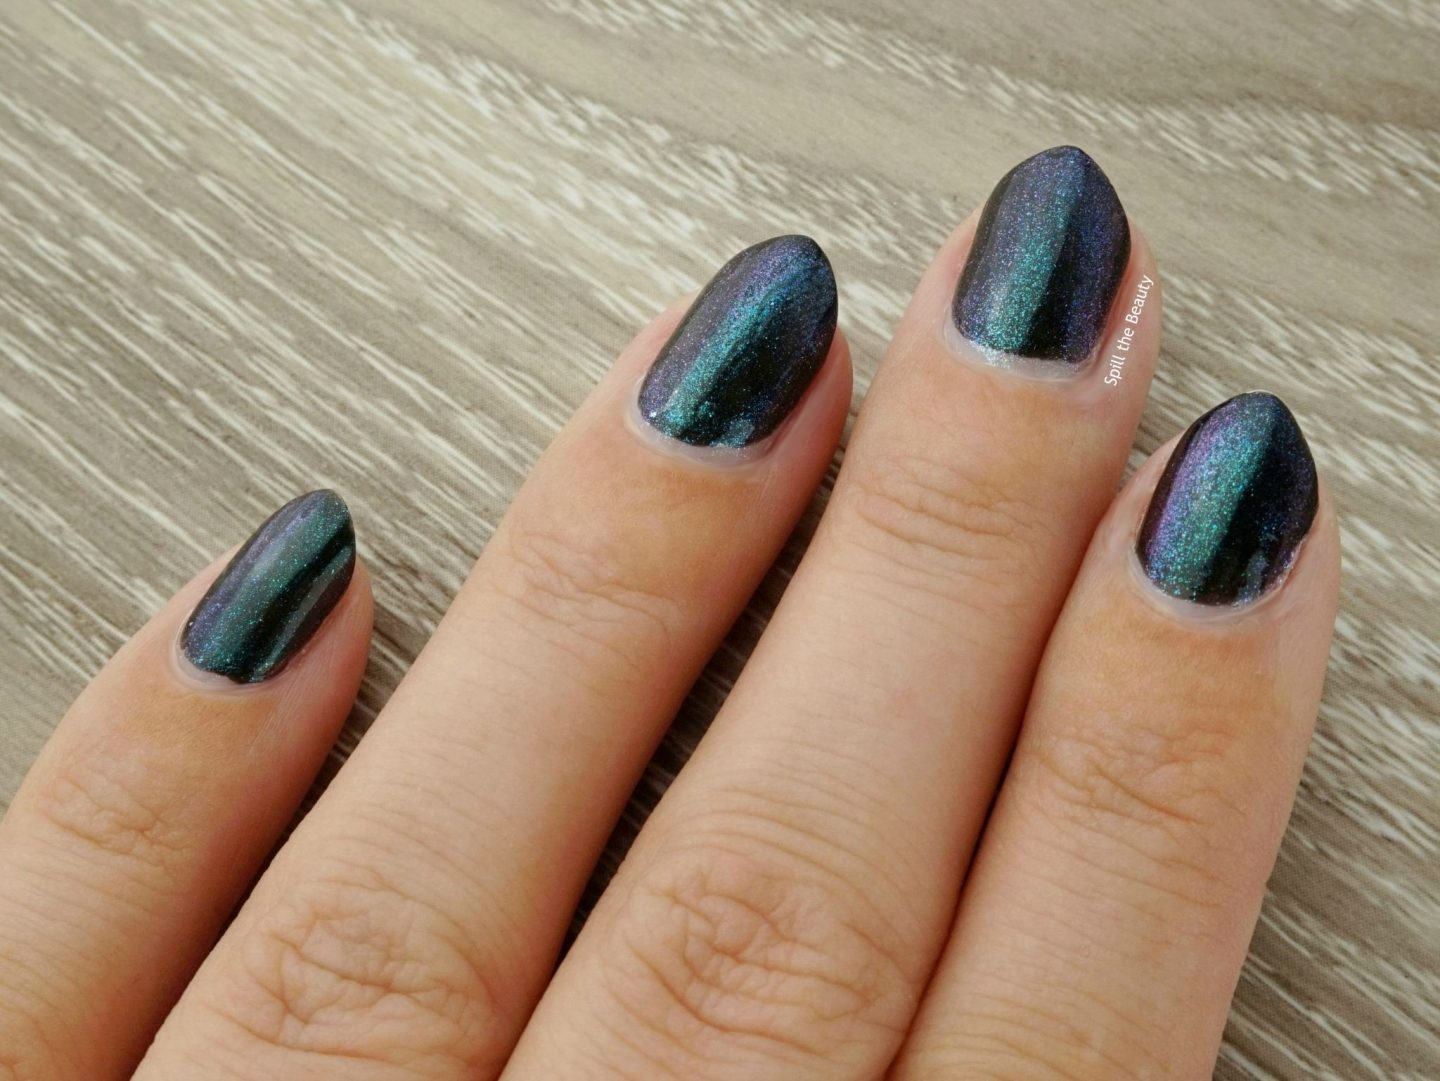 Sally Hansen Chrome Kit review swatches mermaid